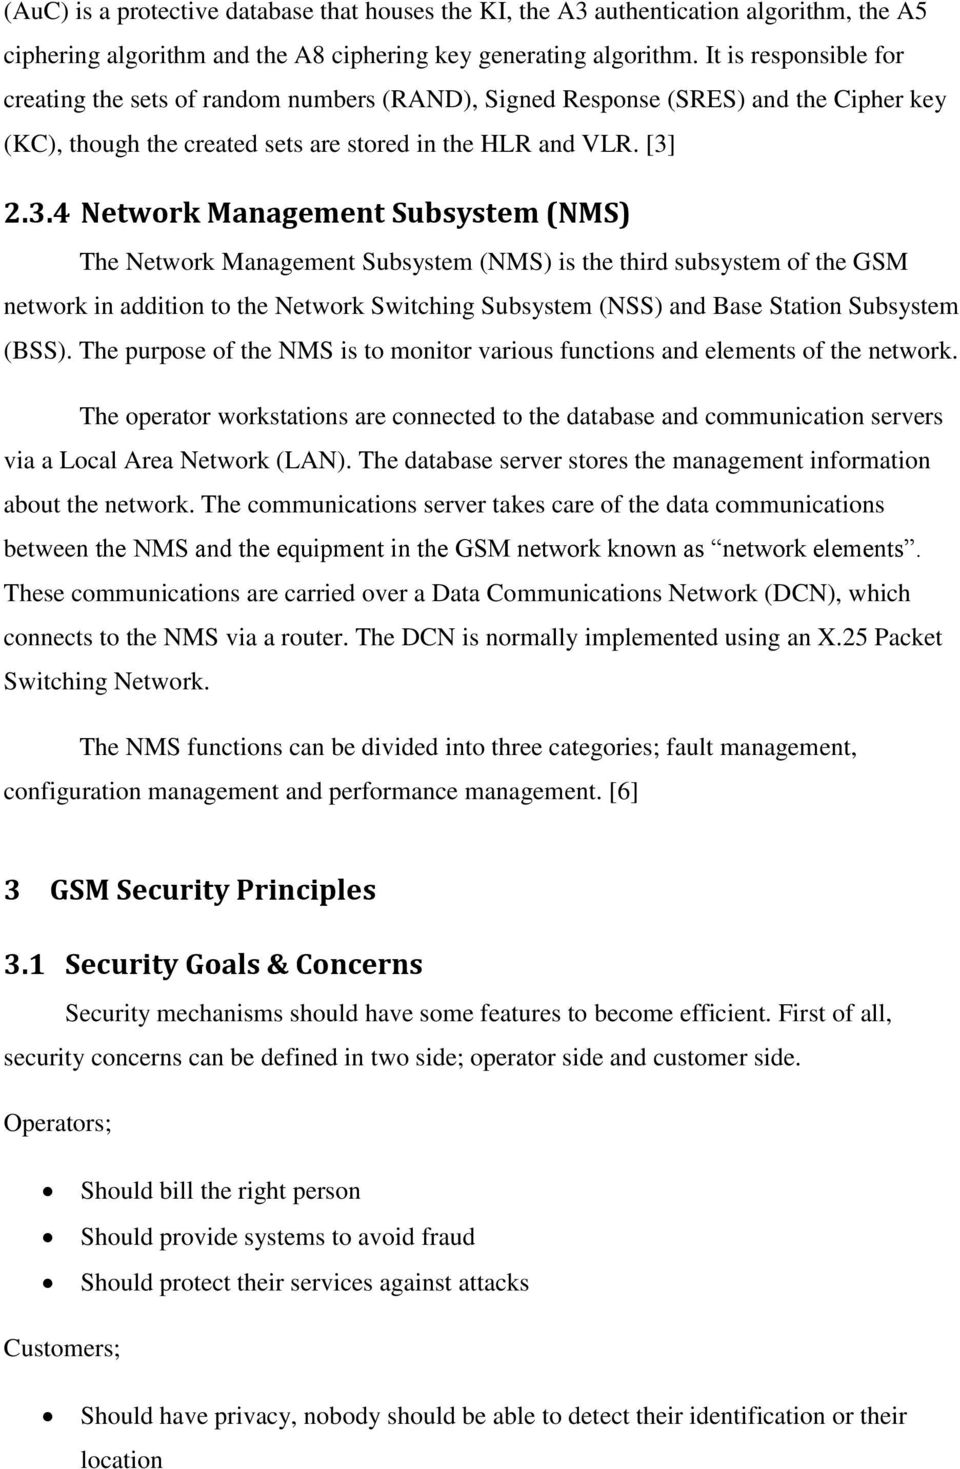 2.3.4 Network Management Subsystem (NMS) The Network Management Subsystem (NMS) is the third subsystem of the GSM network in addition to the Network Switching Subsystem (NSS) and Base Station